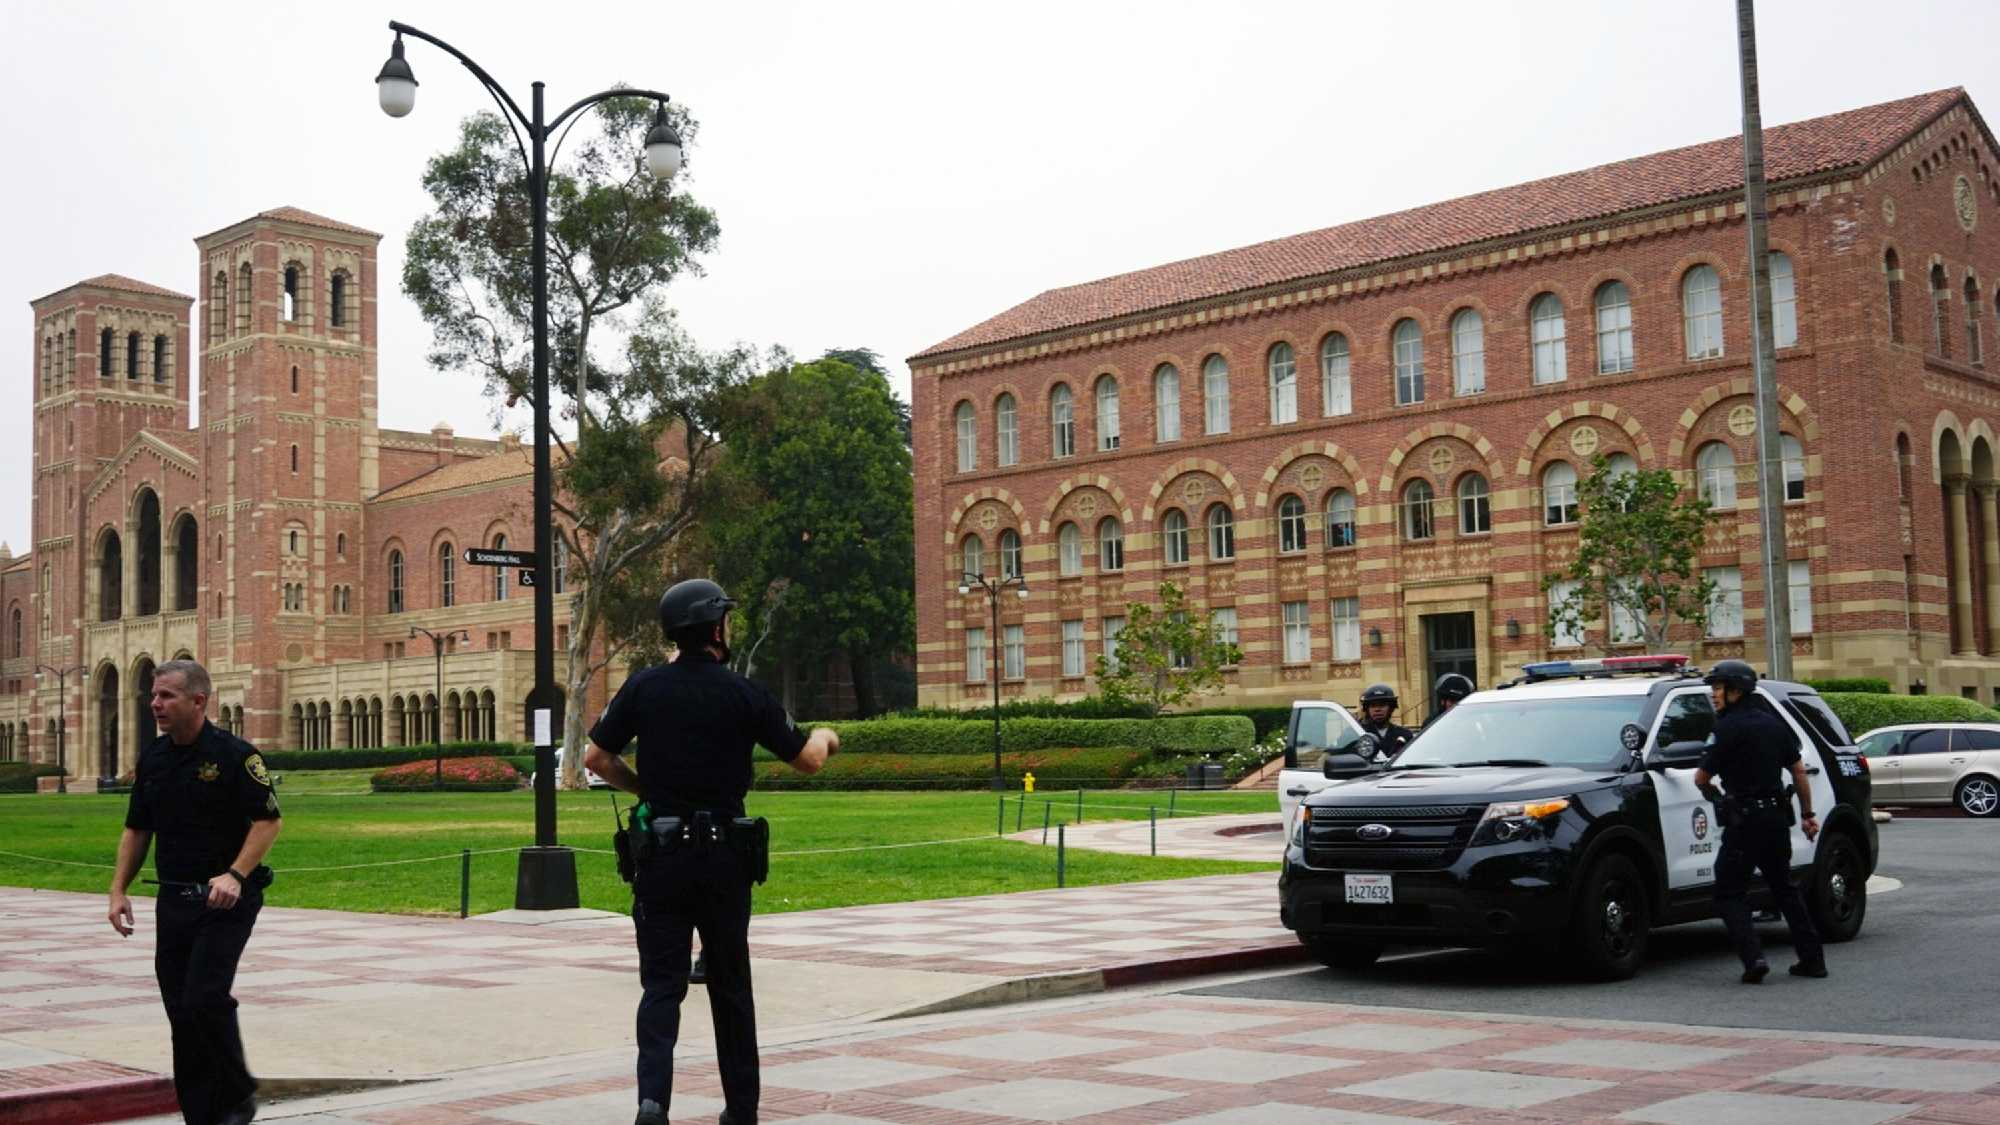 Police work at the scene of a shooting at the University of California, Los Angeles, Wednesday, June 1, 2016, in Los Angeles. (AP Photo/Christine Armario)